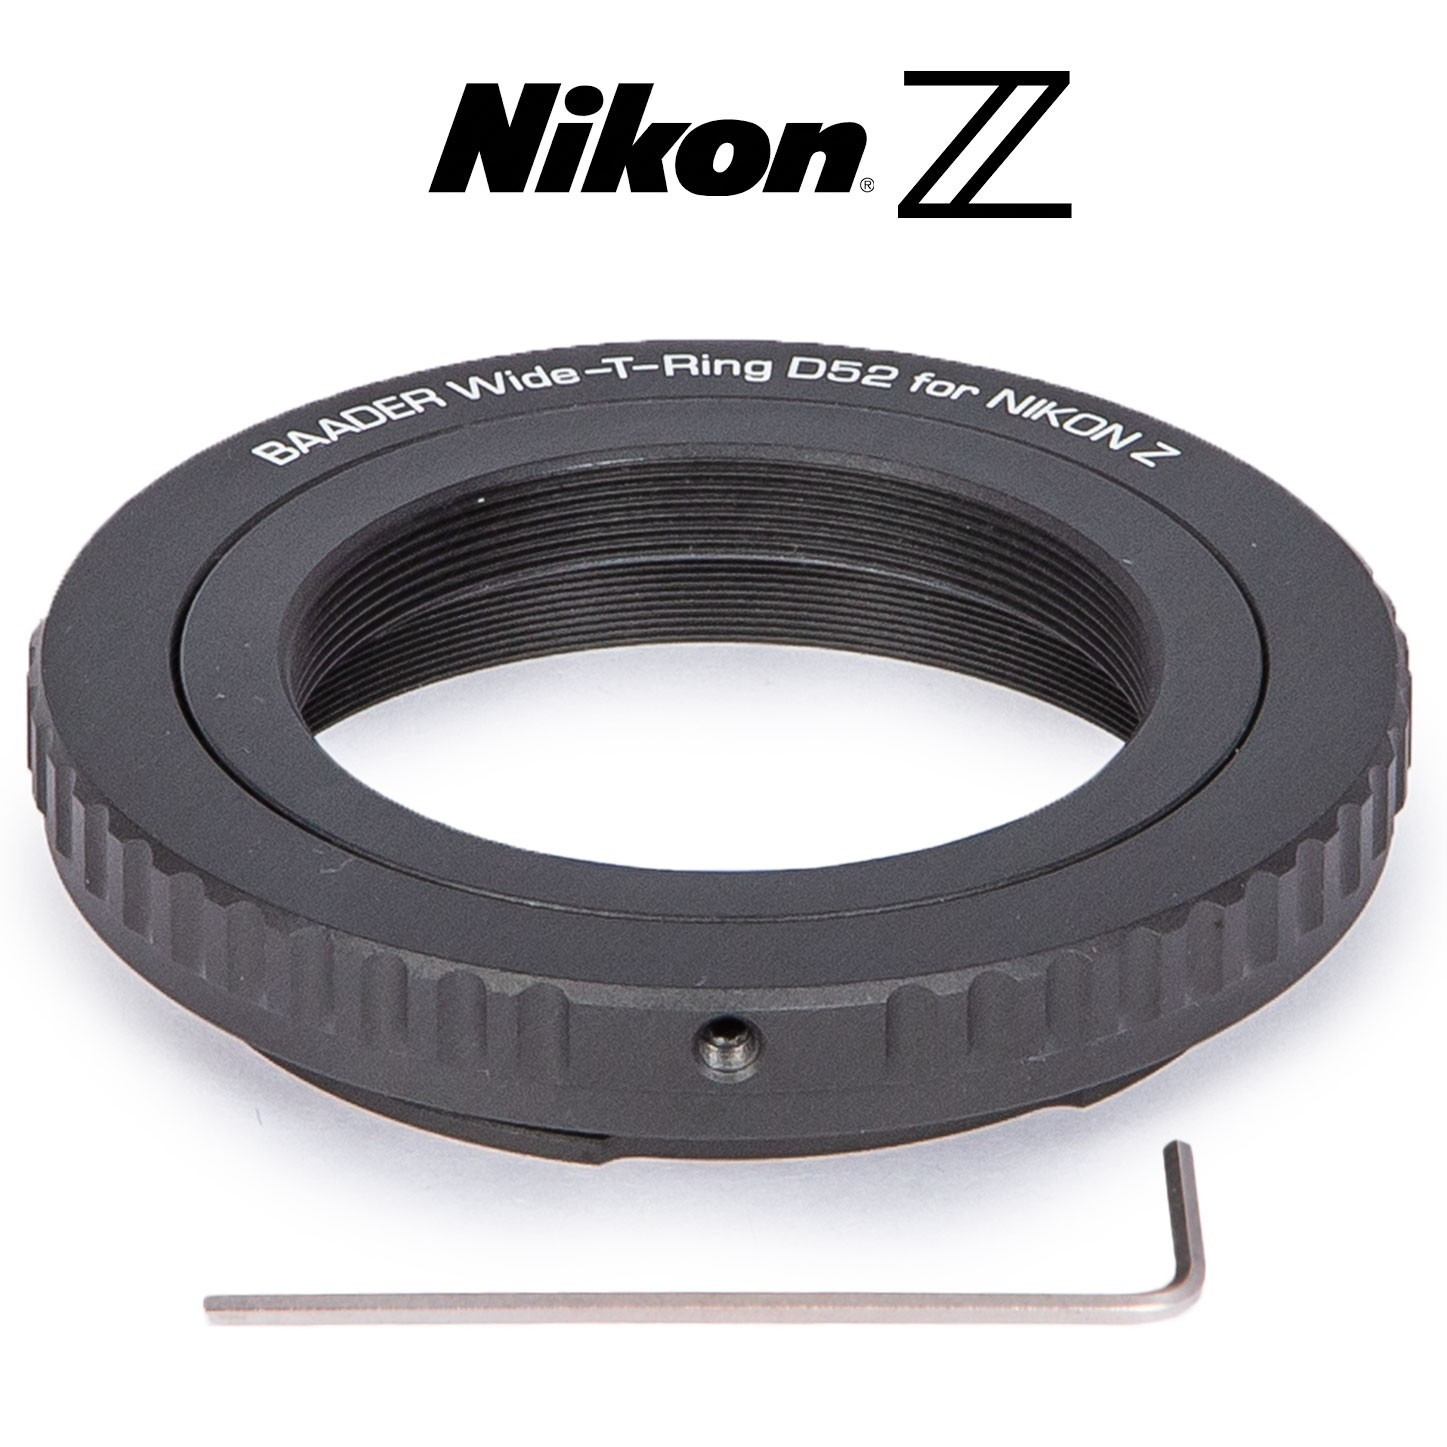 Wide T-Ring Nikon Z (for Nikon Z bajonet) with D52i to T-2 and S52